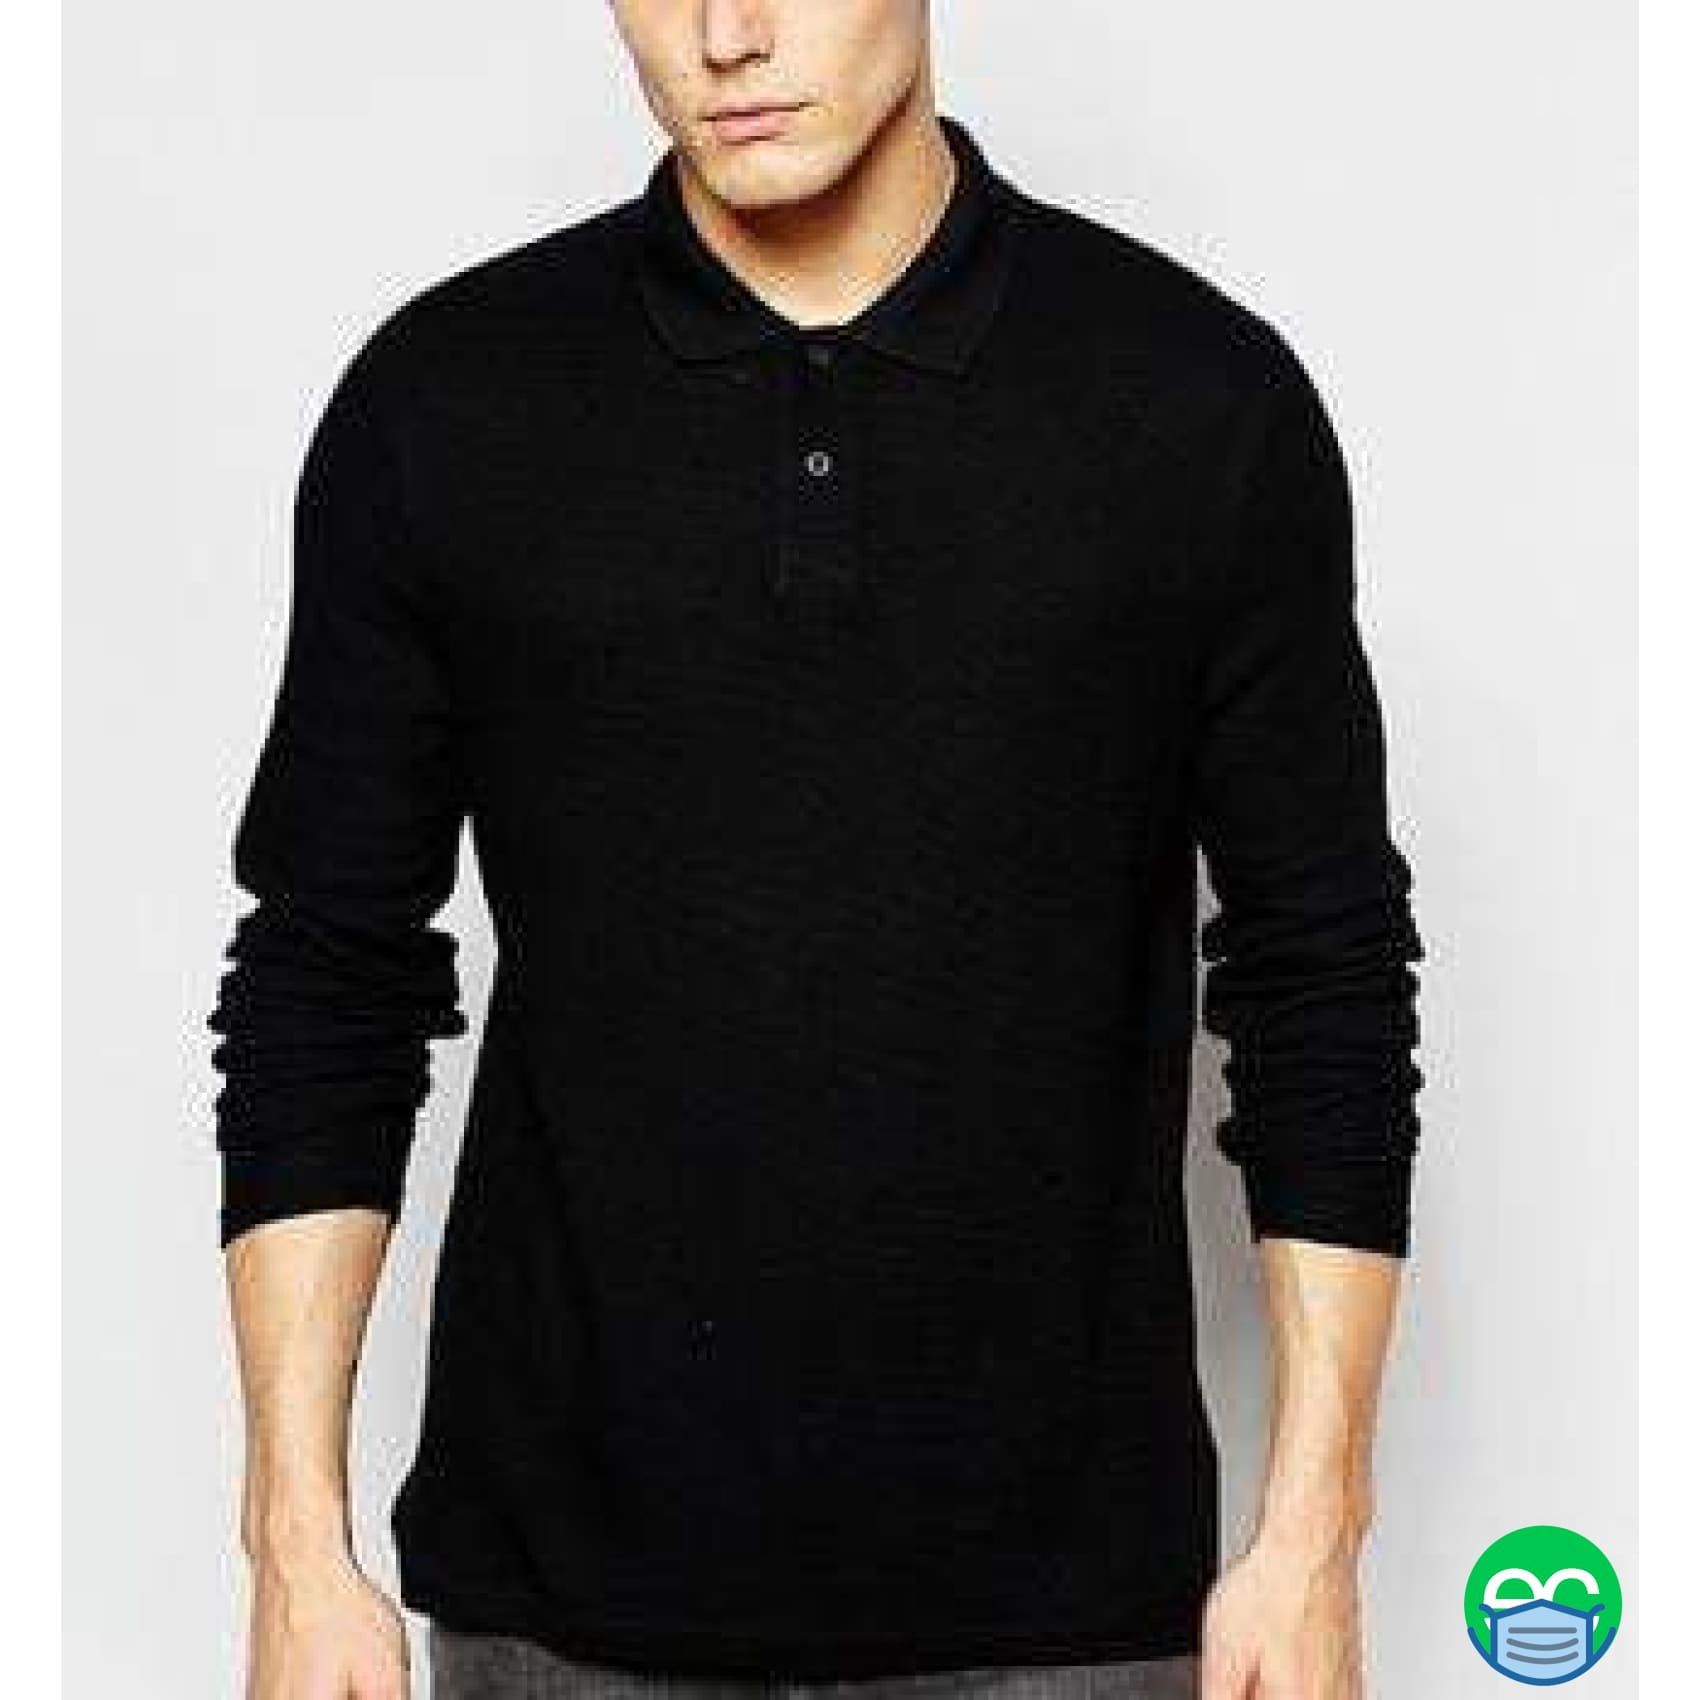 Long Sleeve Security Polo Shirt - ECEmbroid